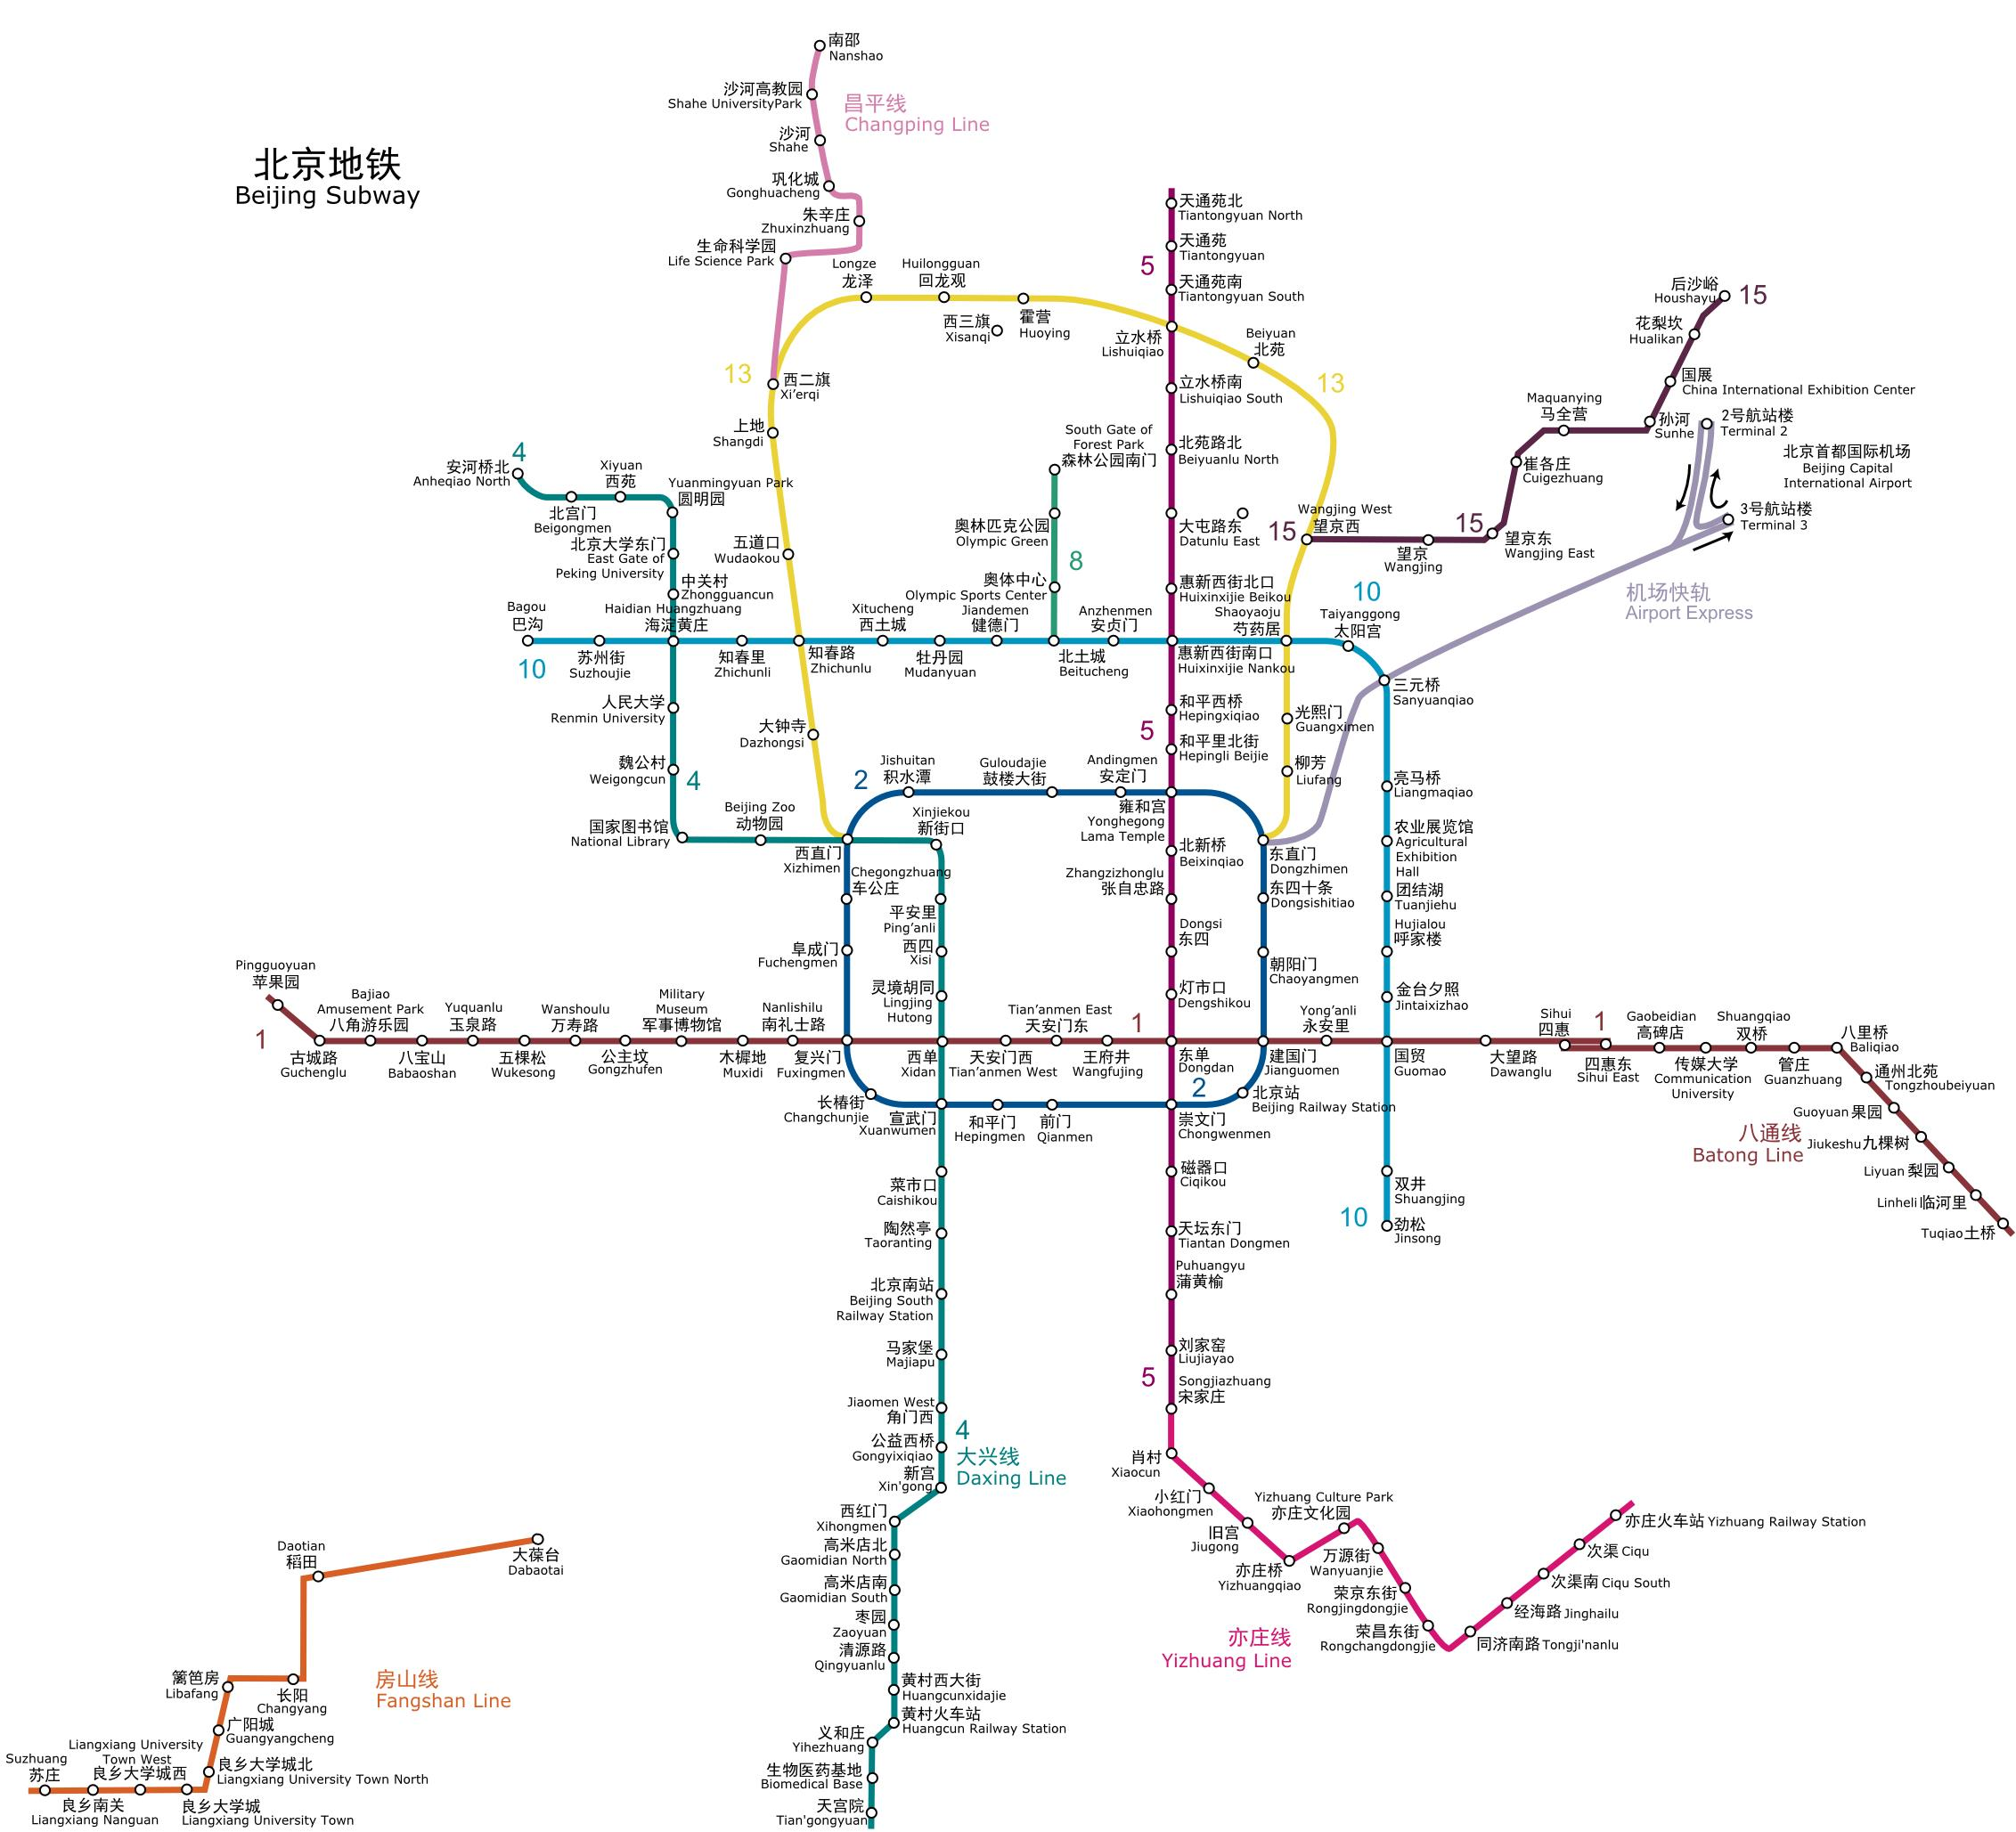 Beijing Subway 2012